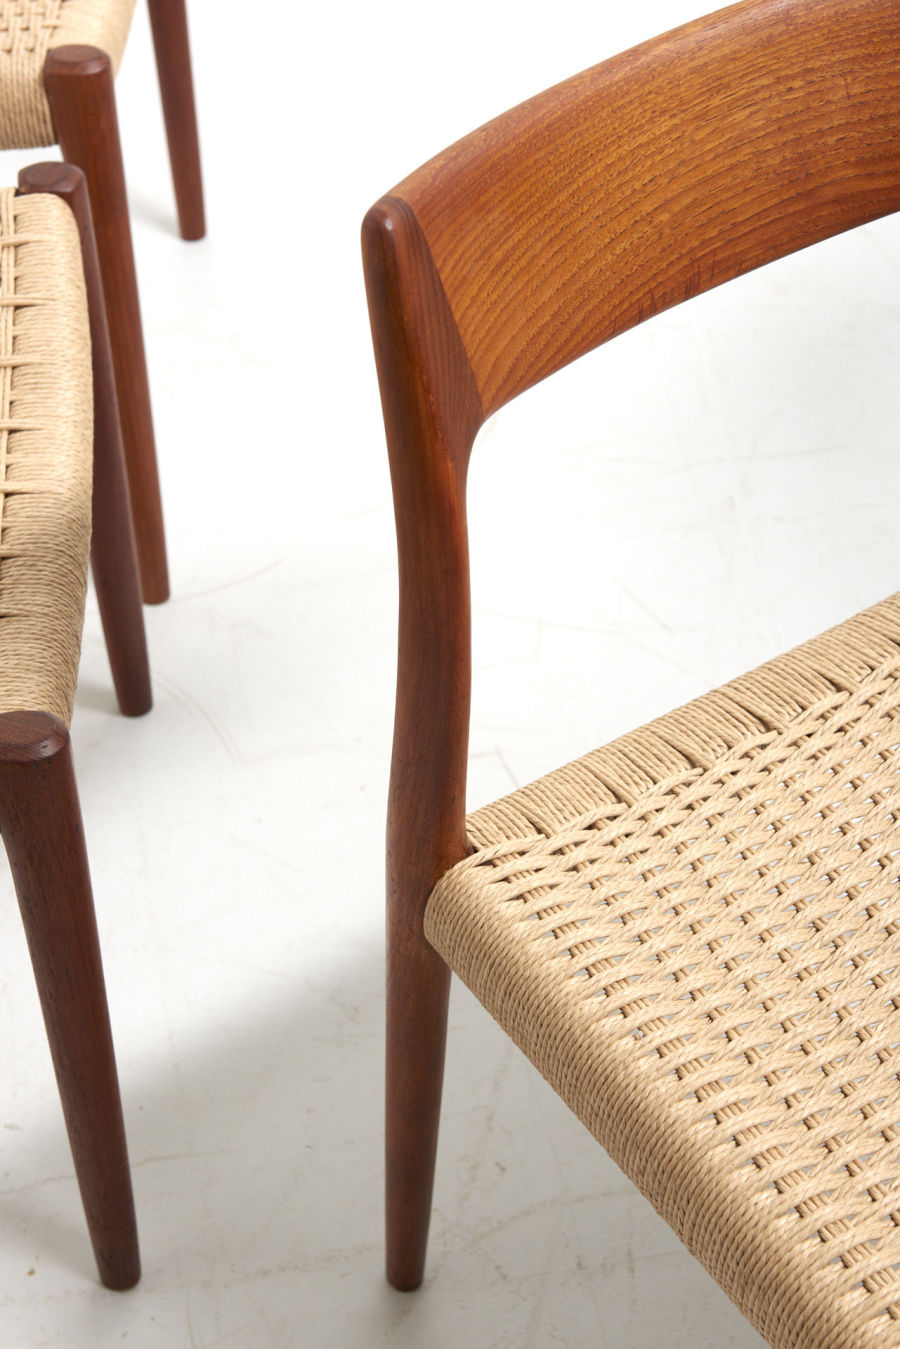 modestfurniture-vintage-2469-niels-moller-dining-chairs-model-77-teak-papercord10